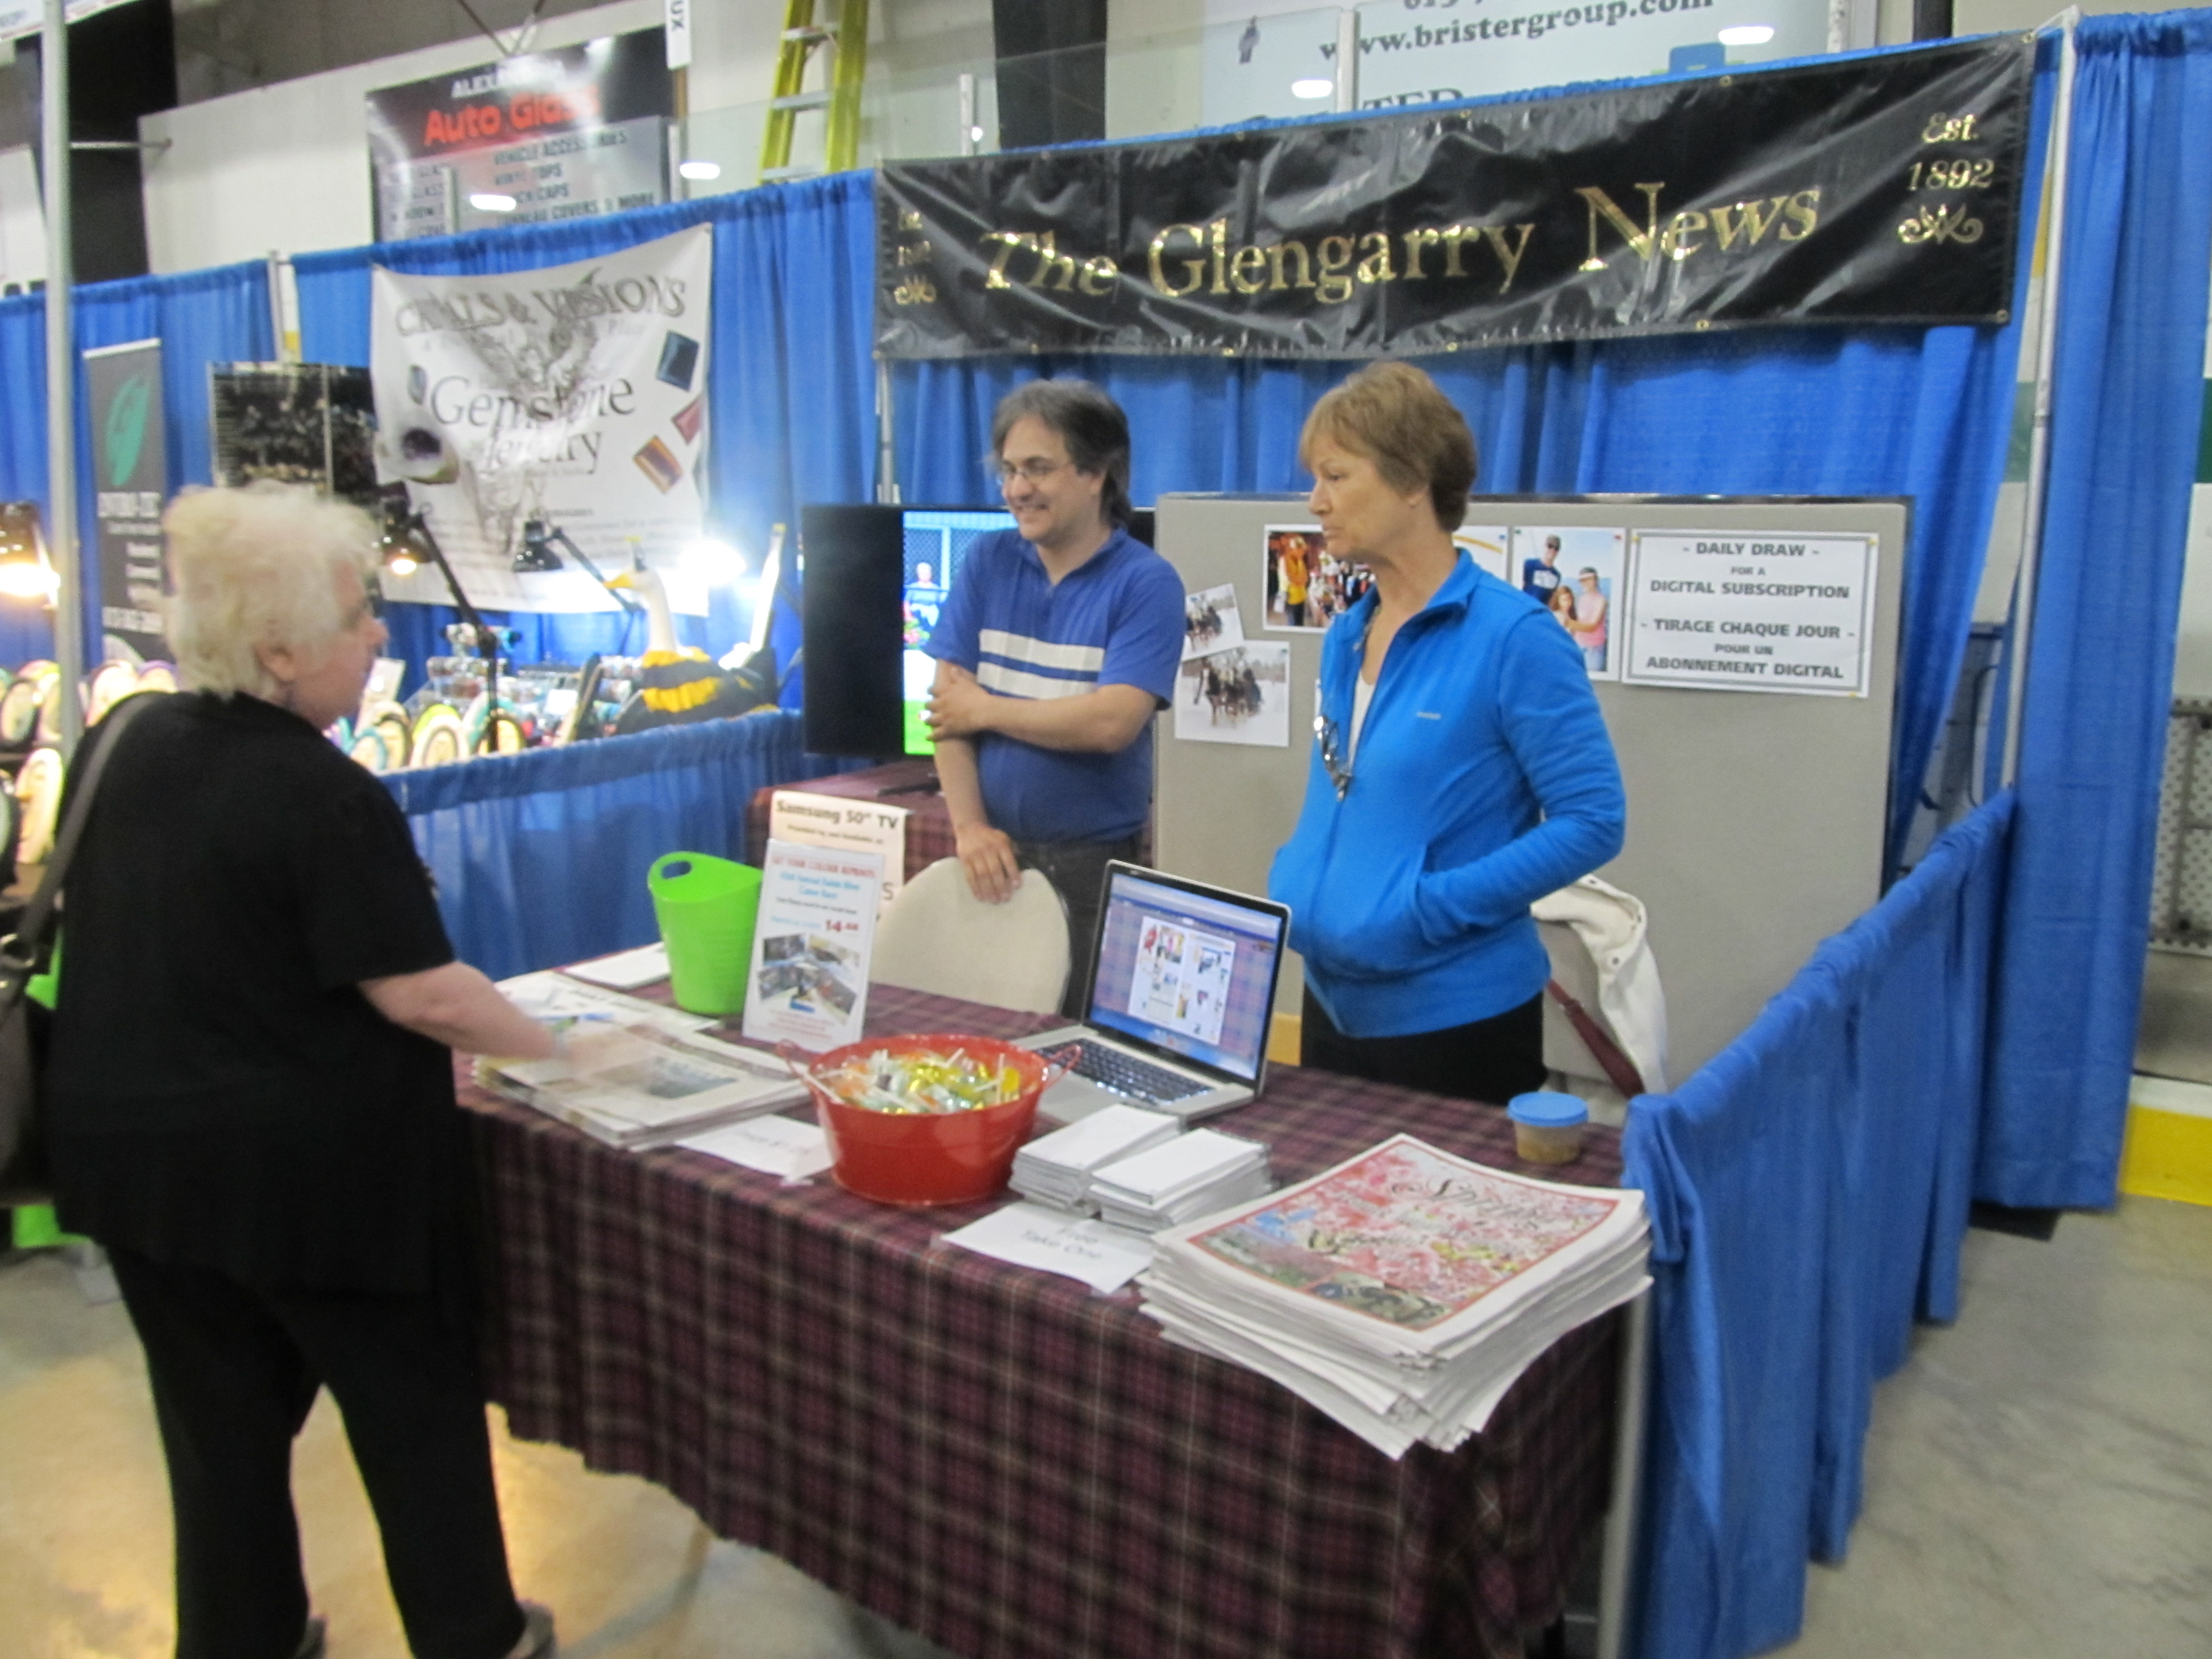 Alexandria Trade Show 2015_Glengarry News Booth